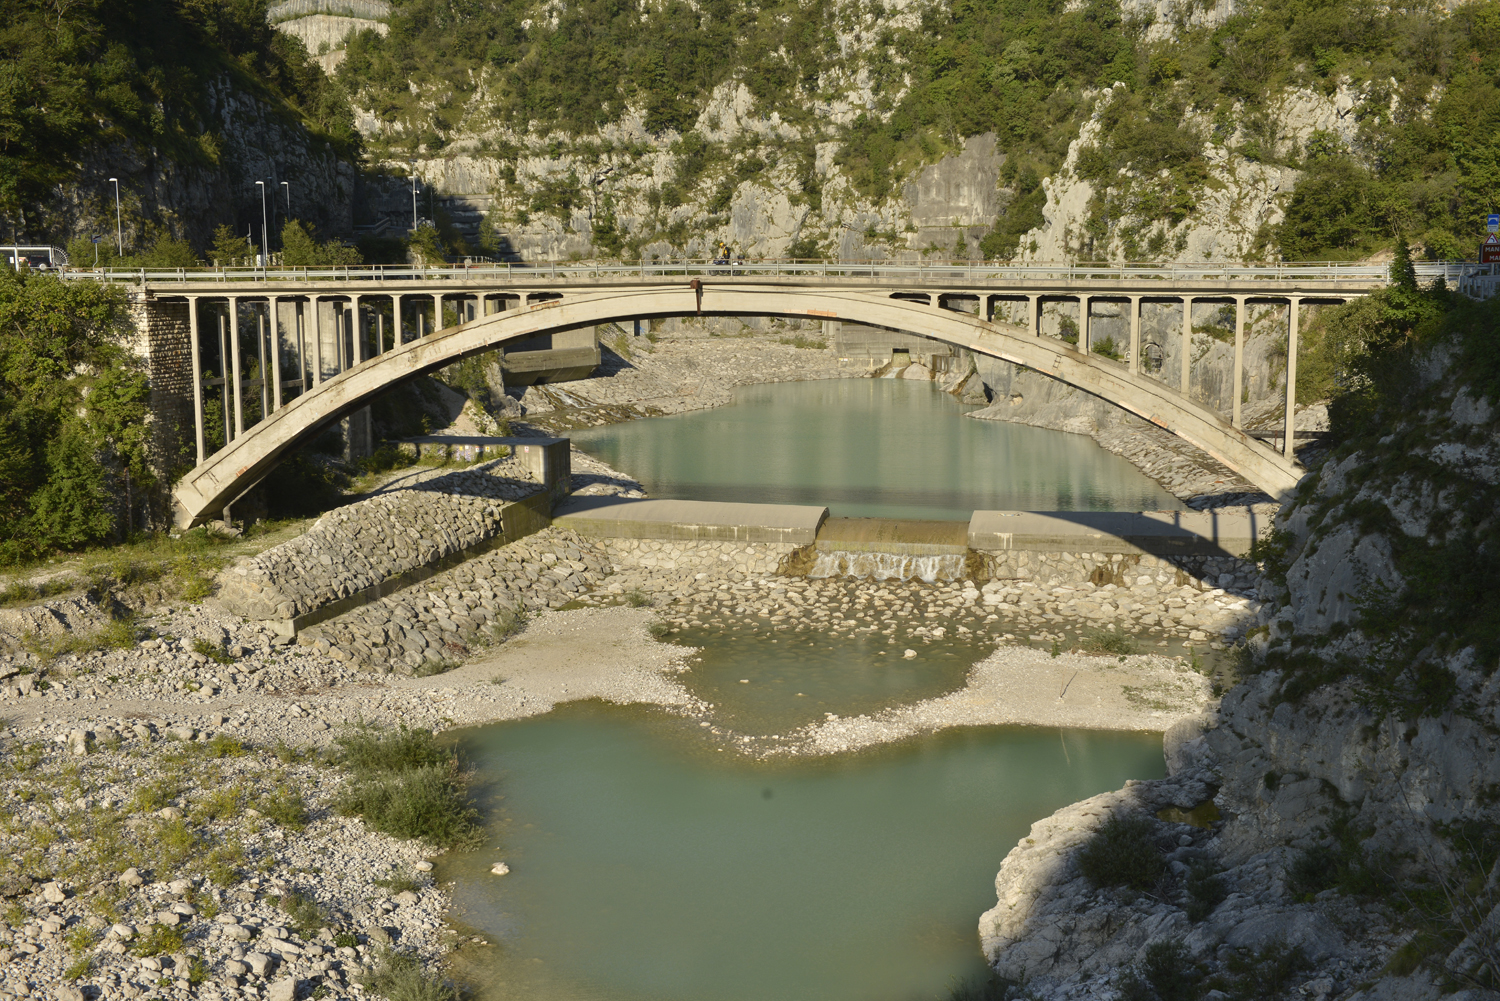 Rivers, mountains and unspoilt Italy at its very best